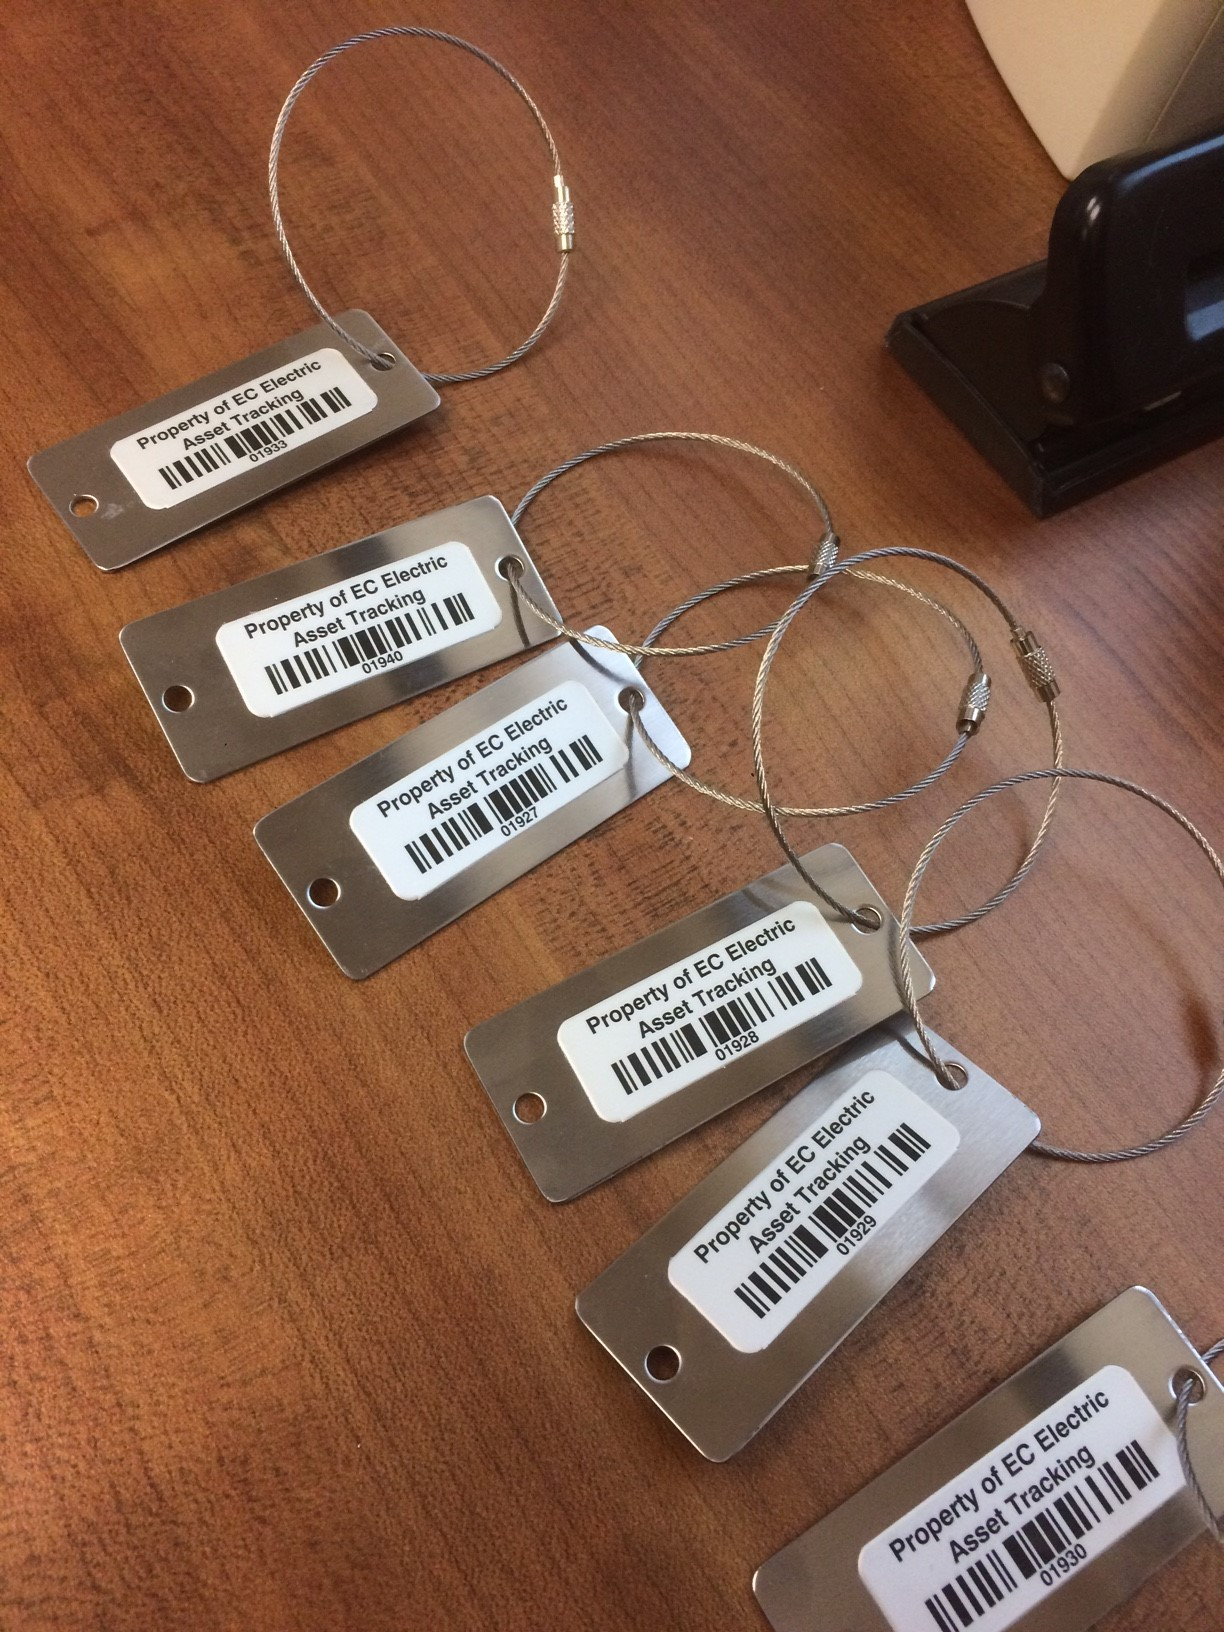 Keychains with bar-codes